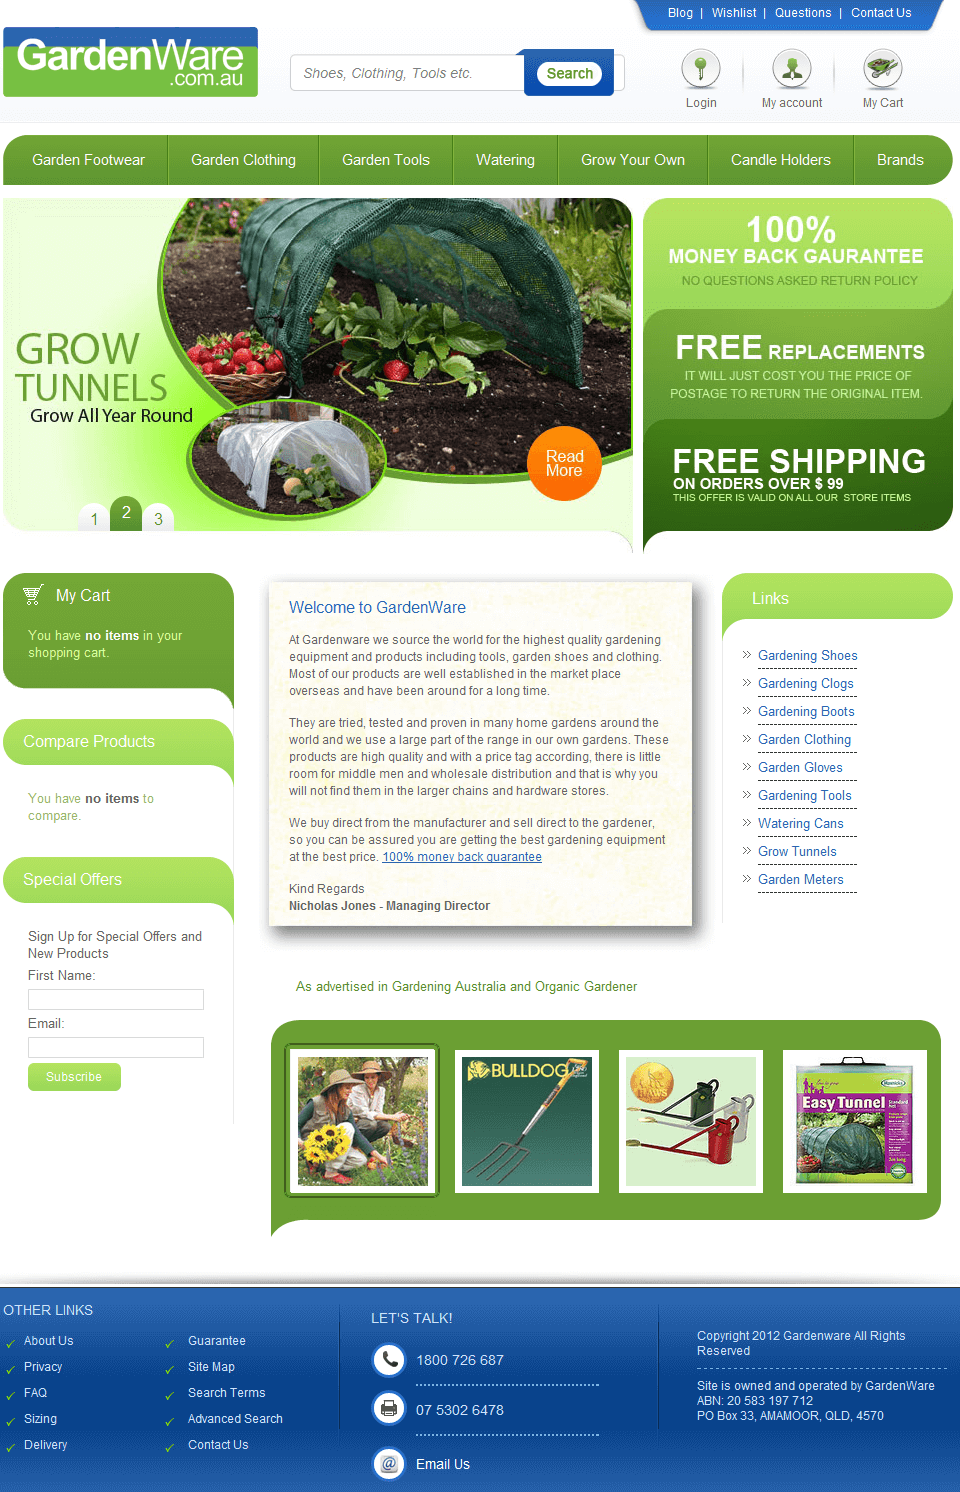 Enhancing Garden Ware: A Magento Based Website